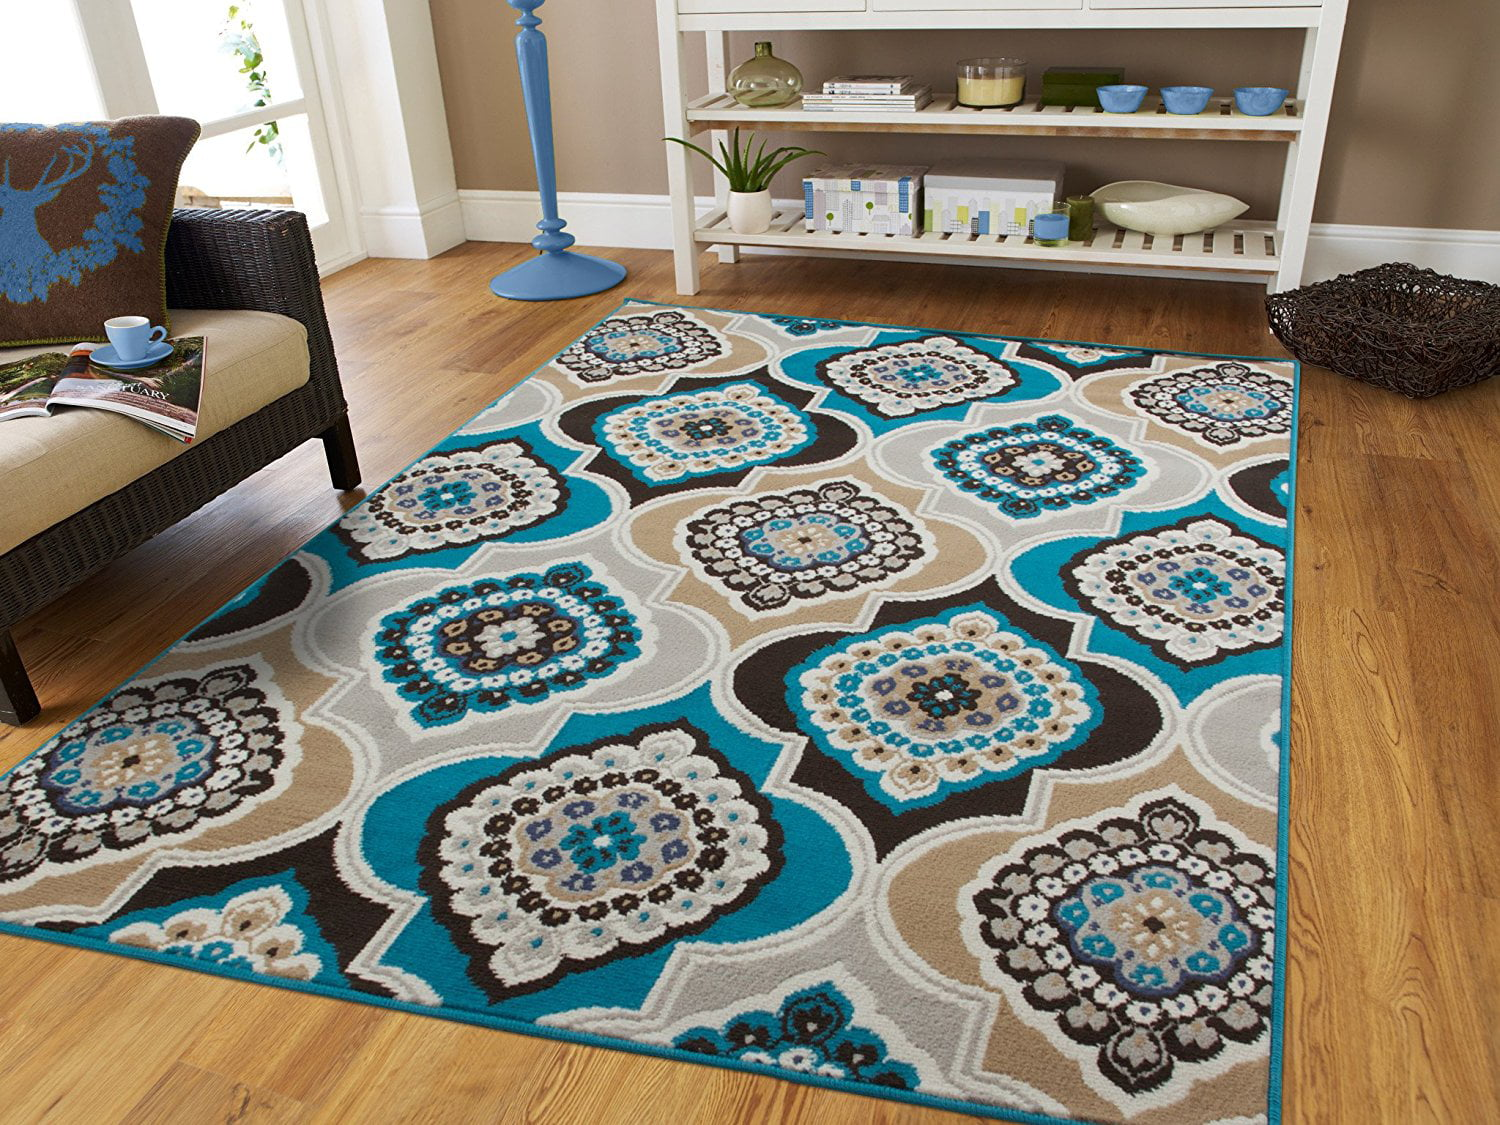 Contemporary Area Rugs Blue 5x8 On Clearance 5x7 Gray For Living Room Bedroom Office Rug Modern Under 50 00blue